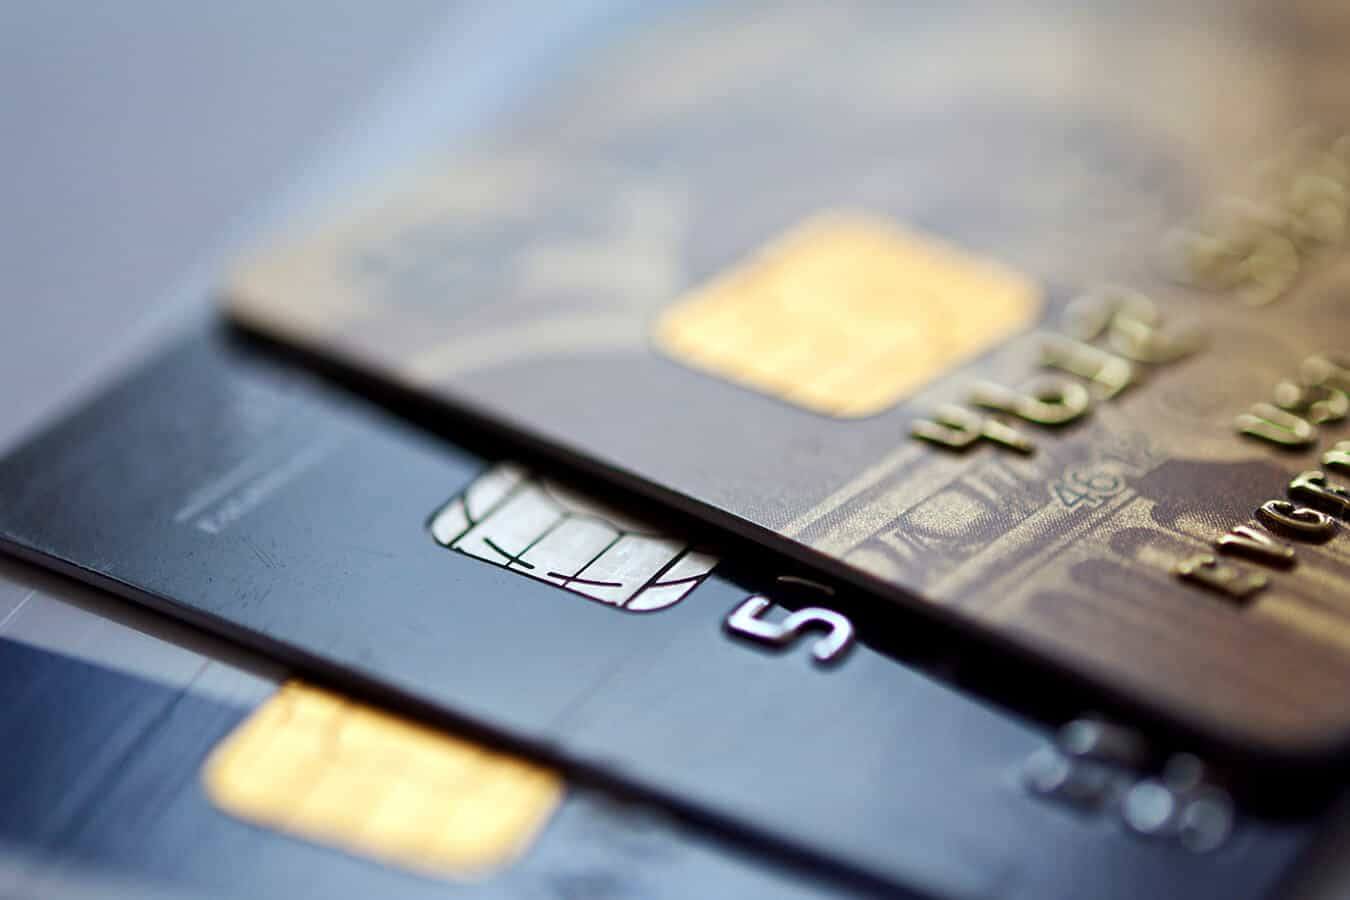 PCI DSS v3.2 - What's changed